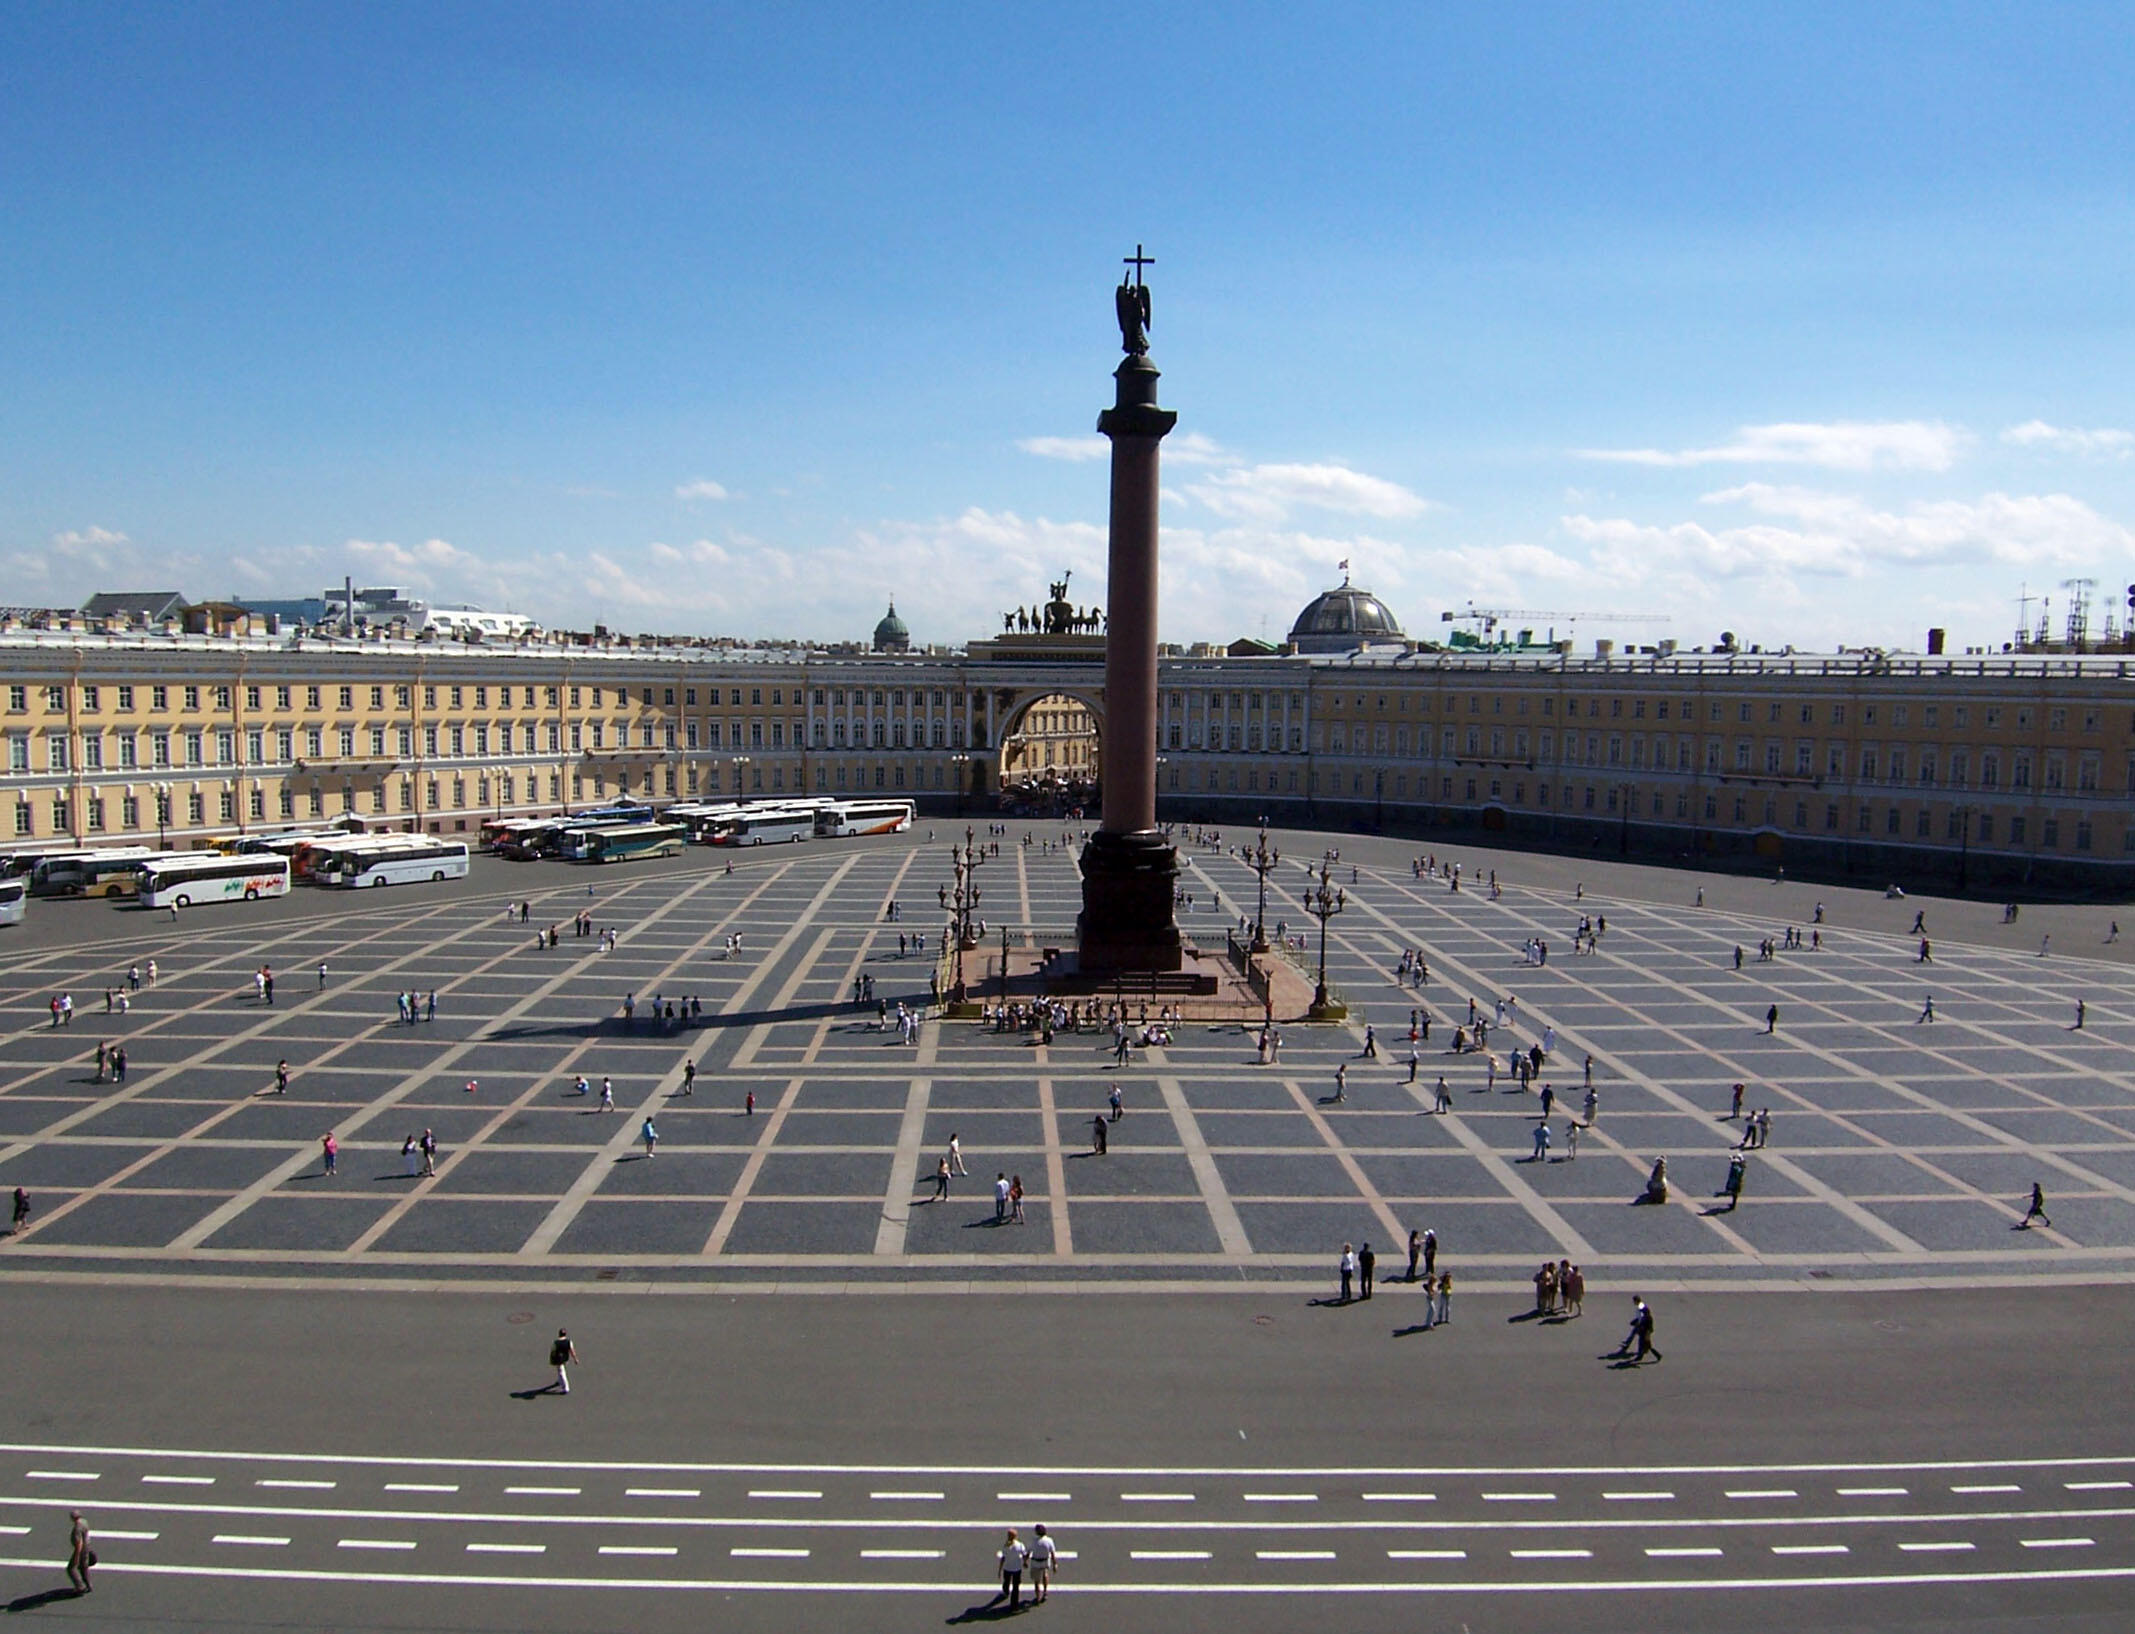 st-petersburg-palace-square